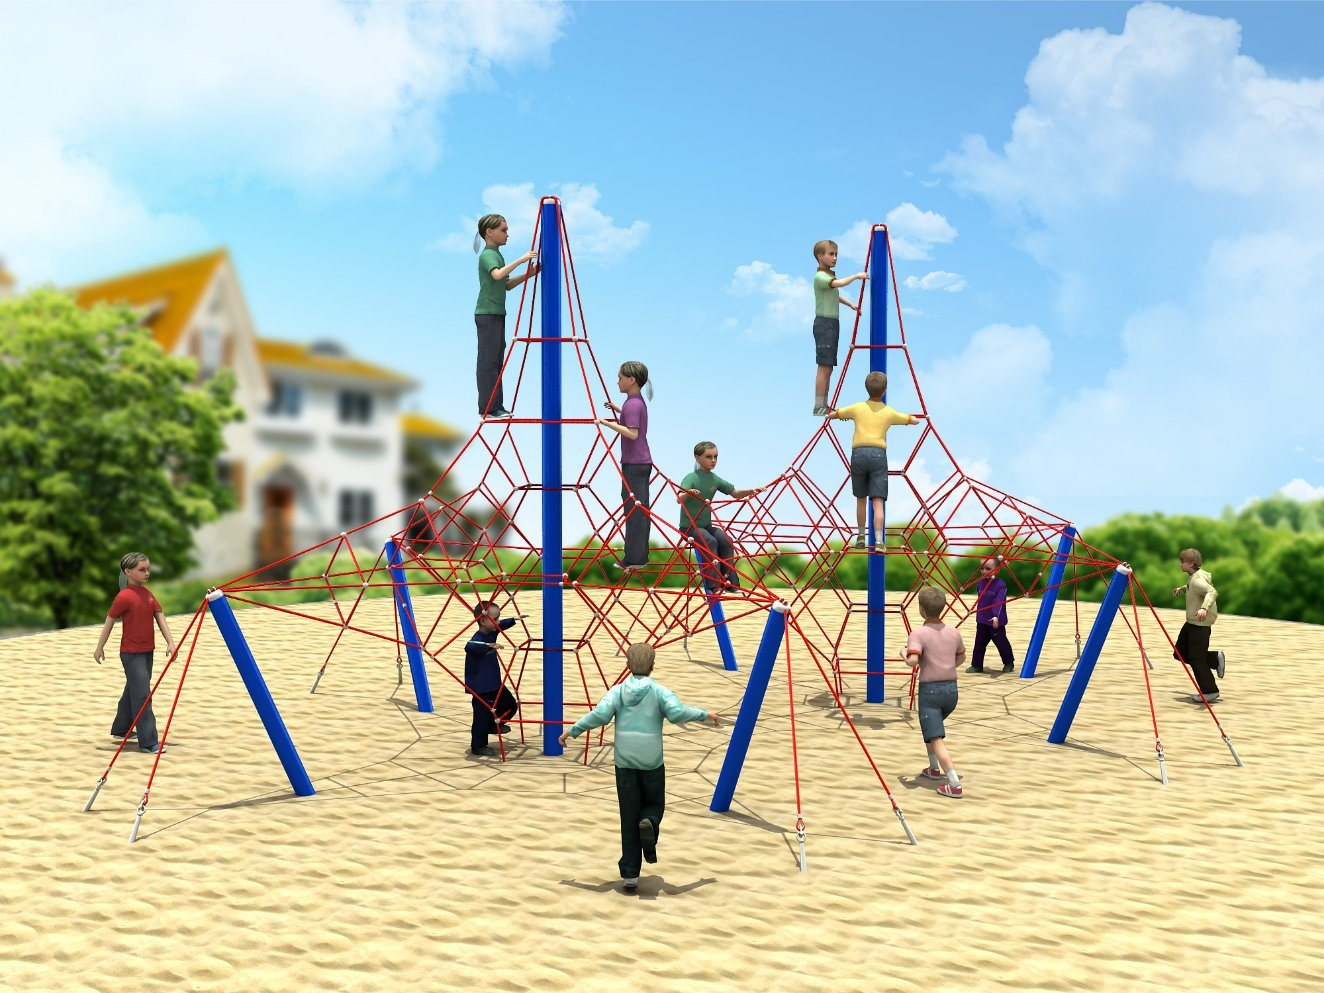 china outdoor fitness playground equipment kids climbing net photos